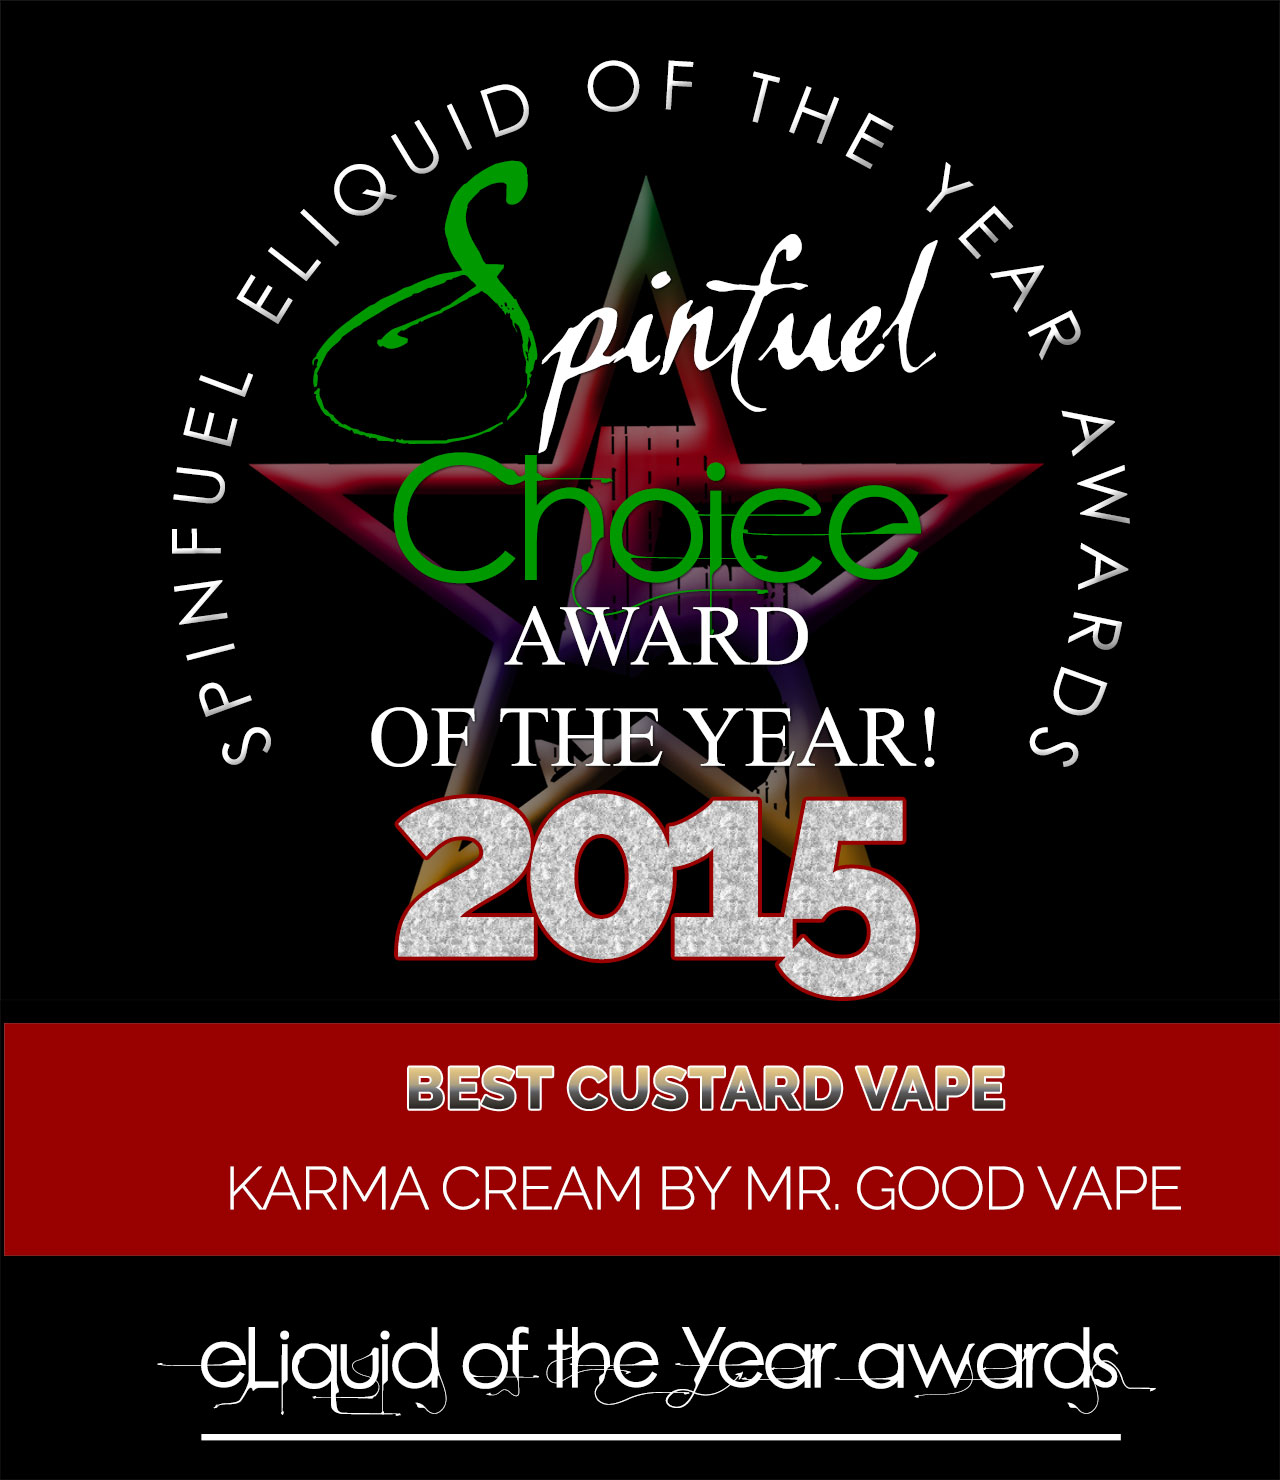 CUSTARD KARMA Mr. GOOD VAPE - Spinfuel Choice Award 2015